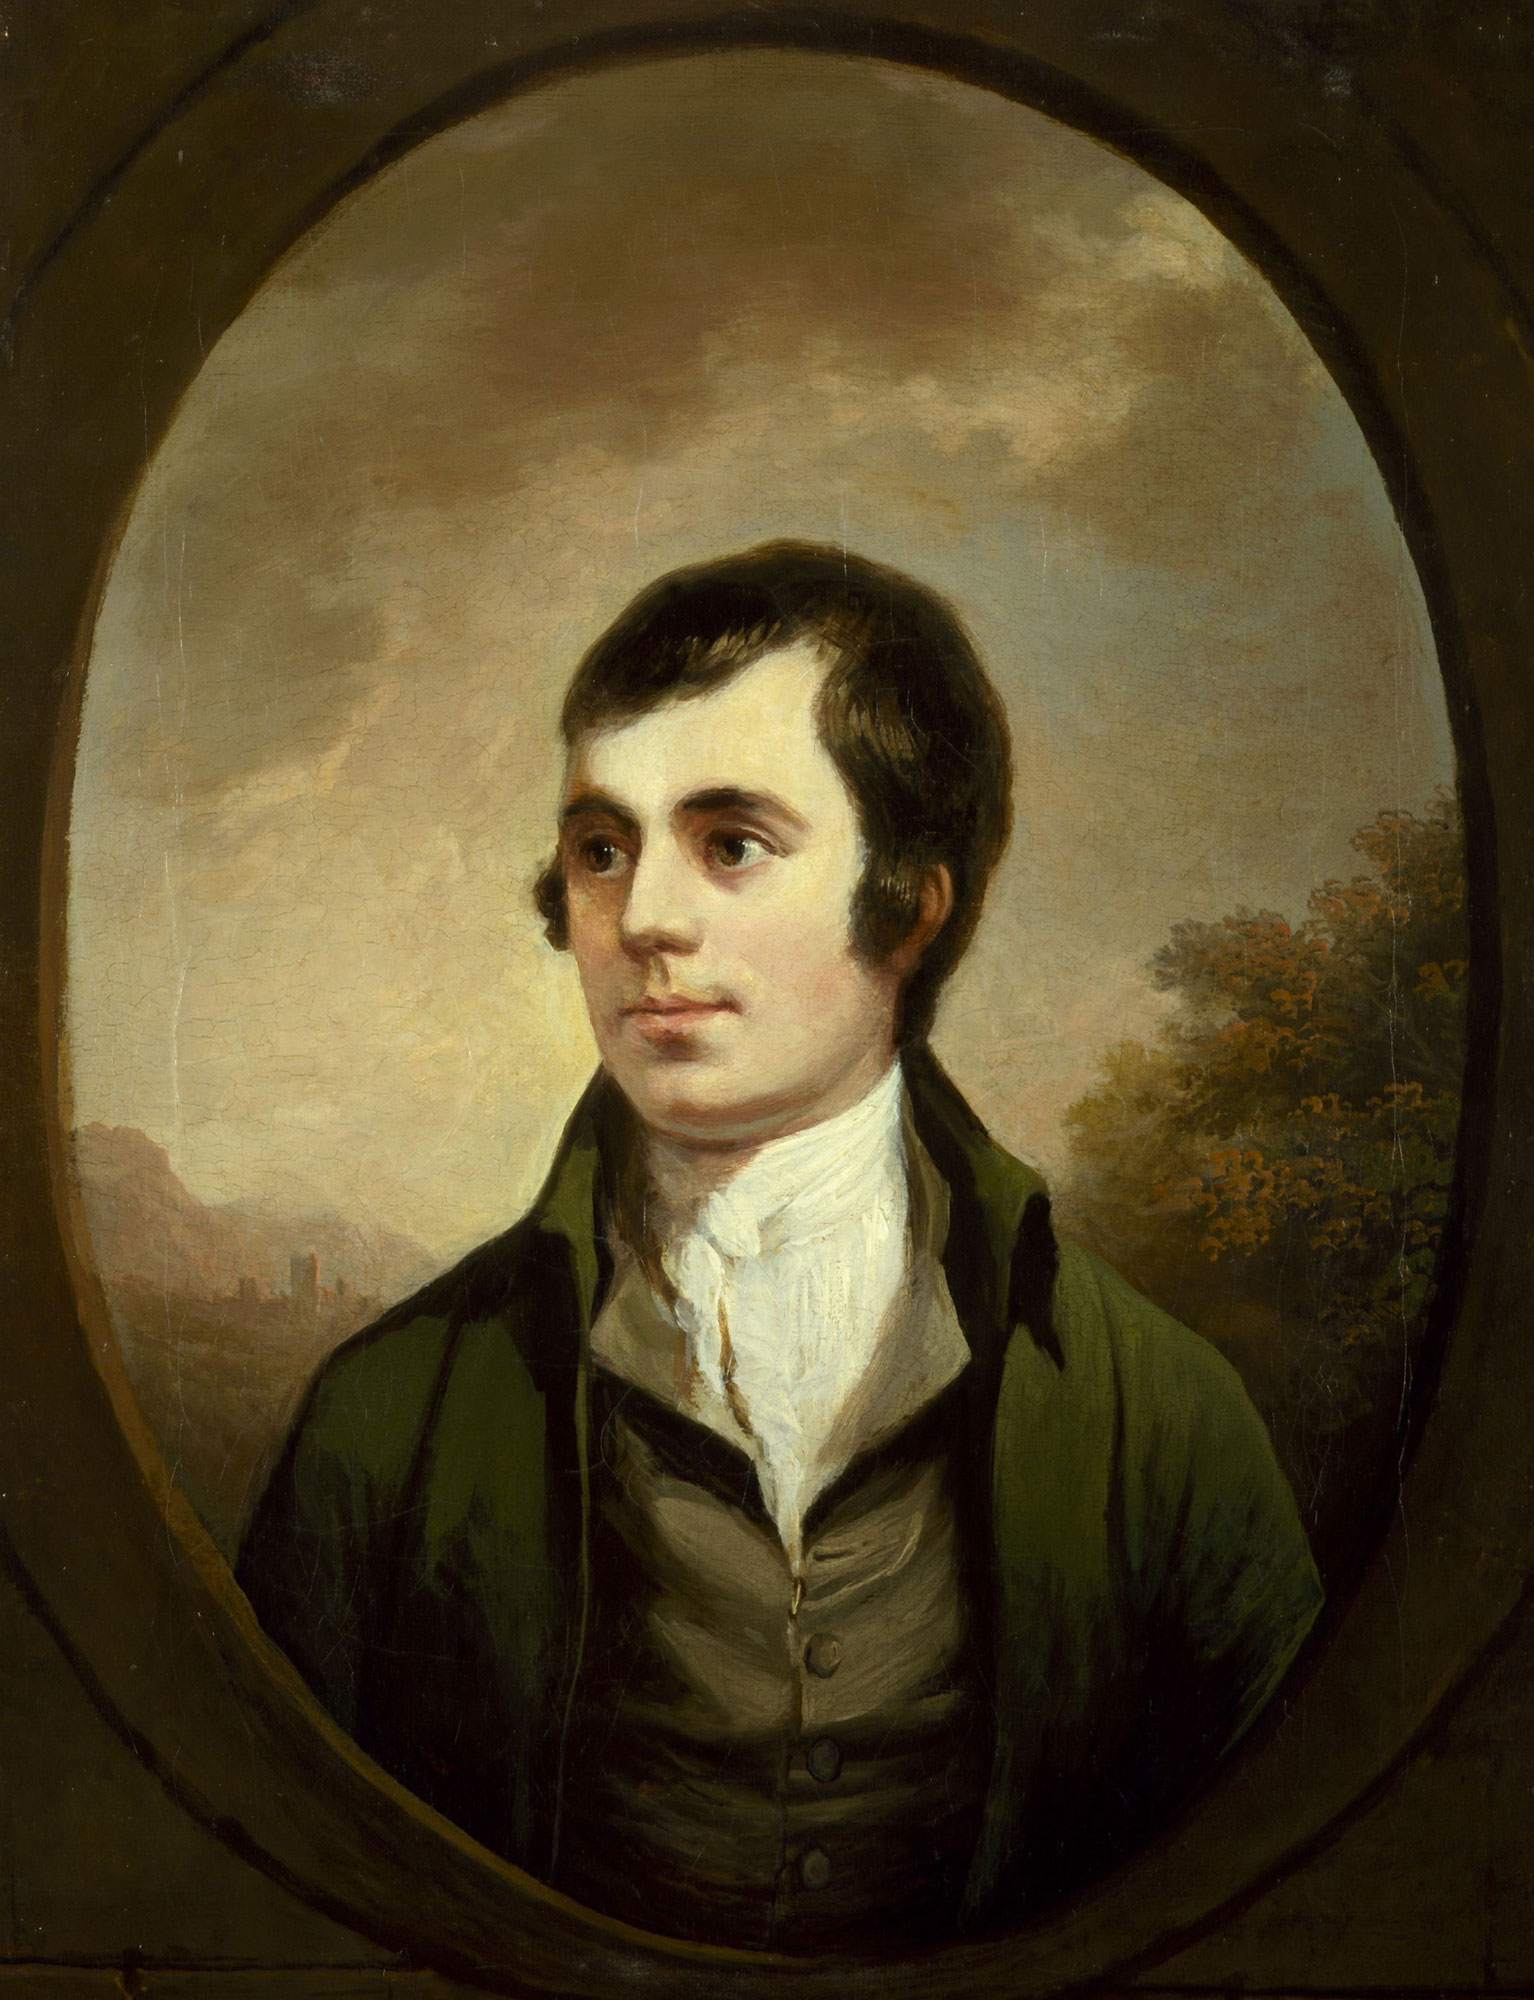 Robert Burns, author of Poems, Chiefly in the Scottish Dialect. Portrait by Alexander Nasmyth © National Portrait Gallery, London.